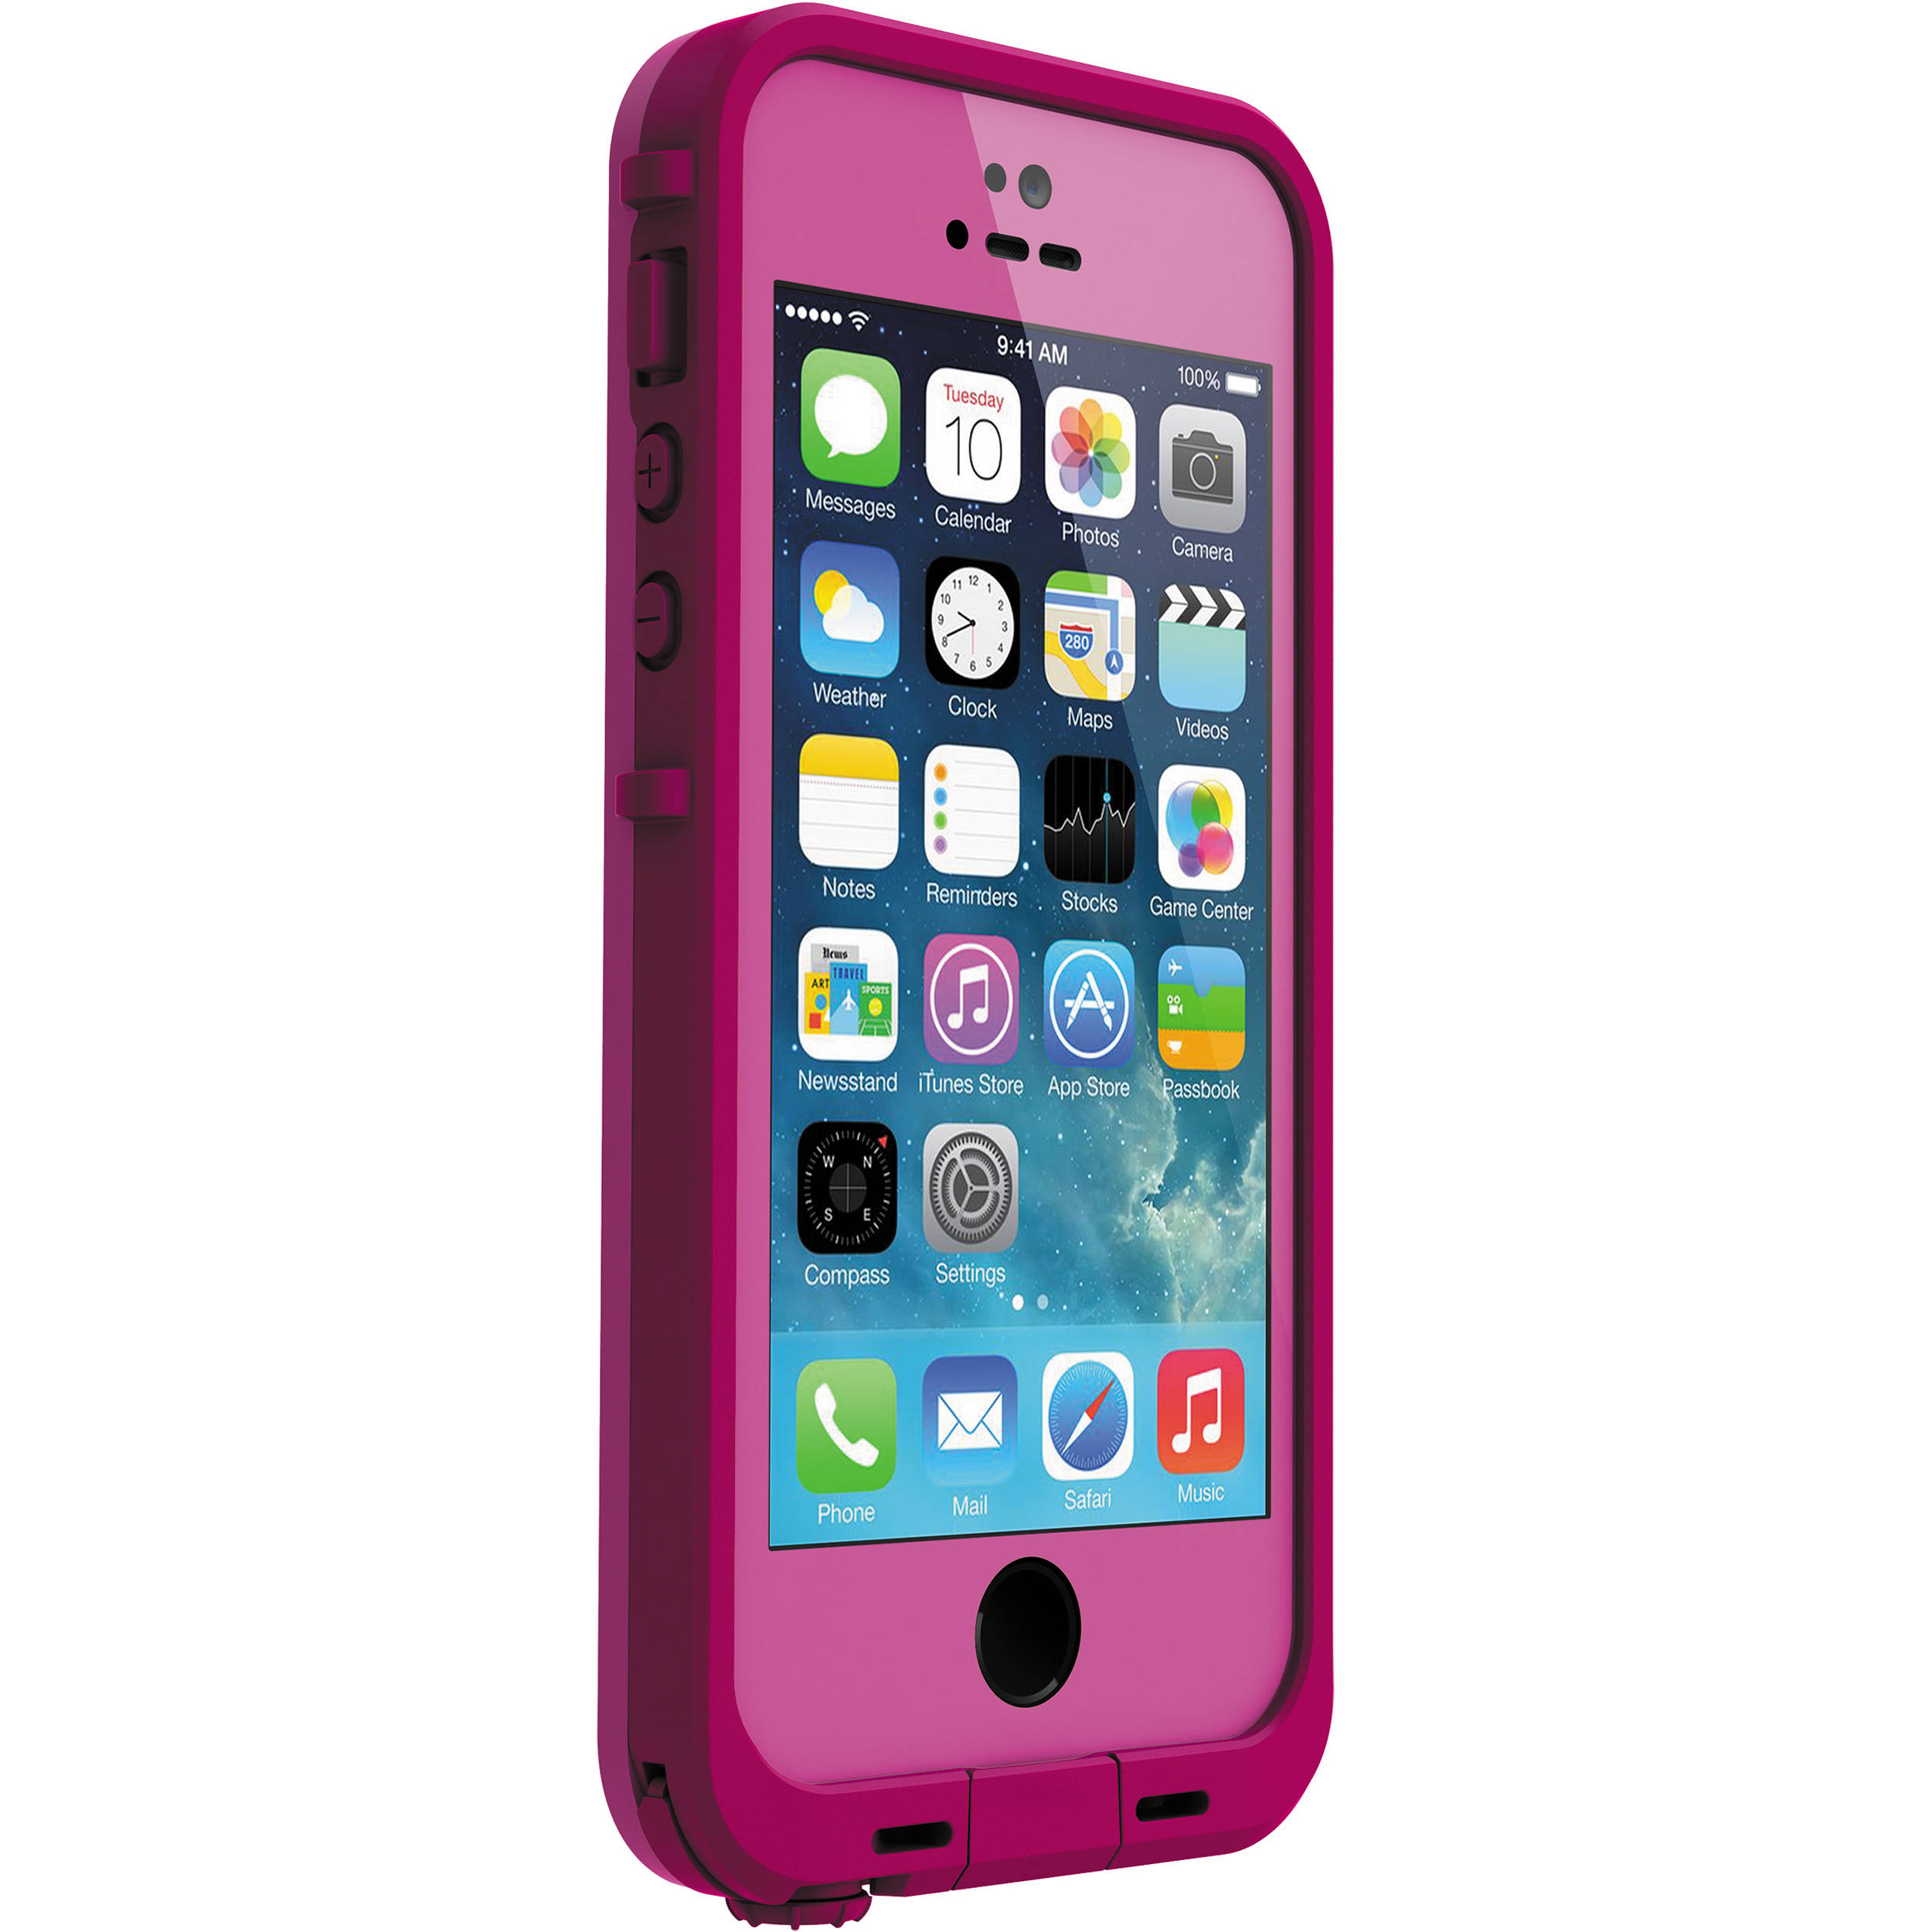 LifeProof Fr? Case For IPhone 5/5s/SE 2115-04 B&H Photo Video